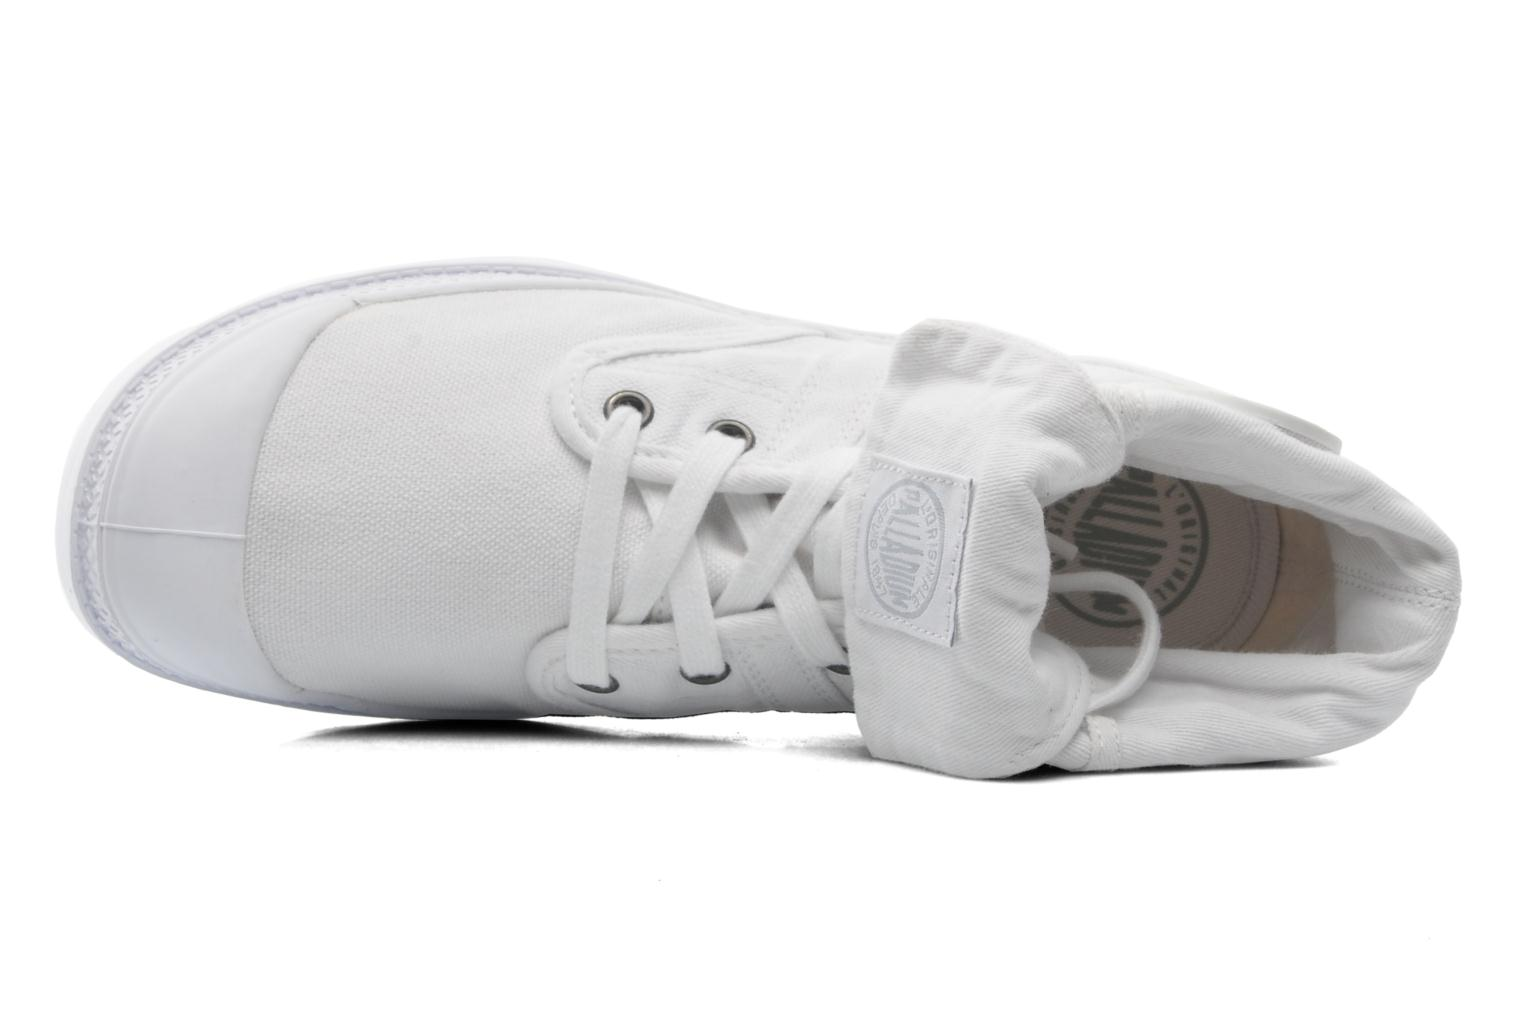 Baskets Palladium Baggy CVS f Blanc vue gauche